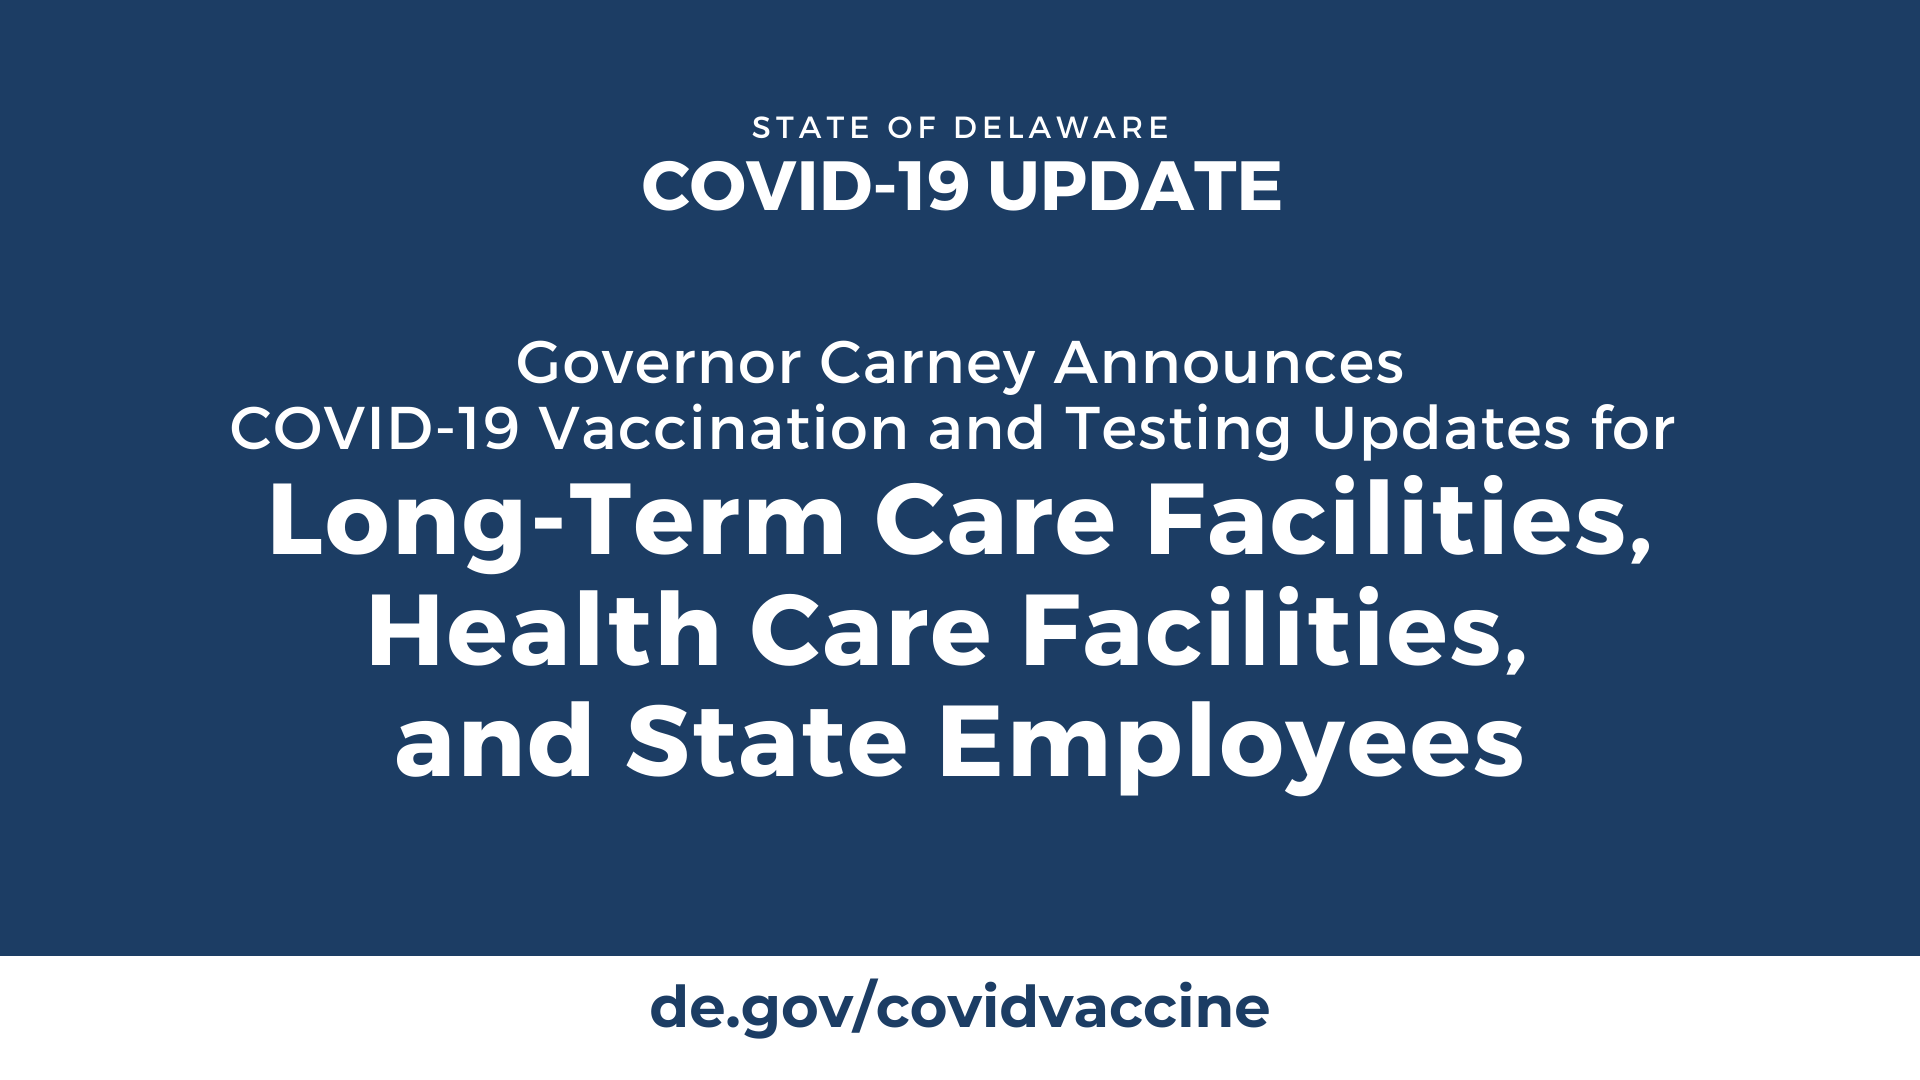 Governor Carney Announces COVID-19 Vaccination and Testing Updates for Long-Term Care Facilities, Health Care Facilities, and State Employees